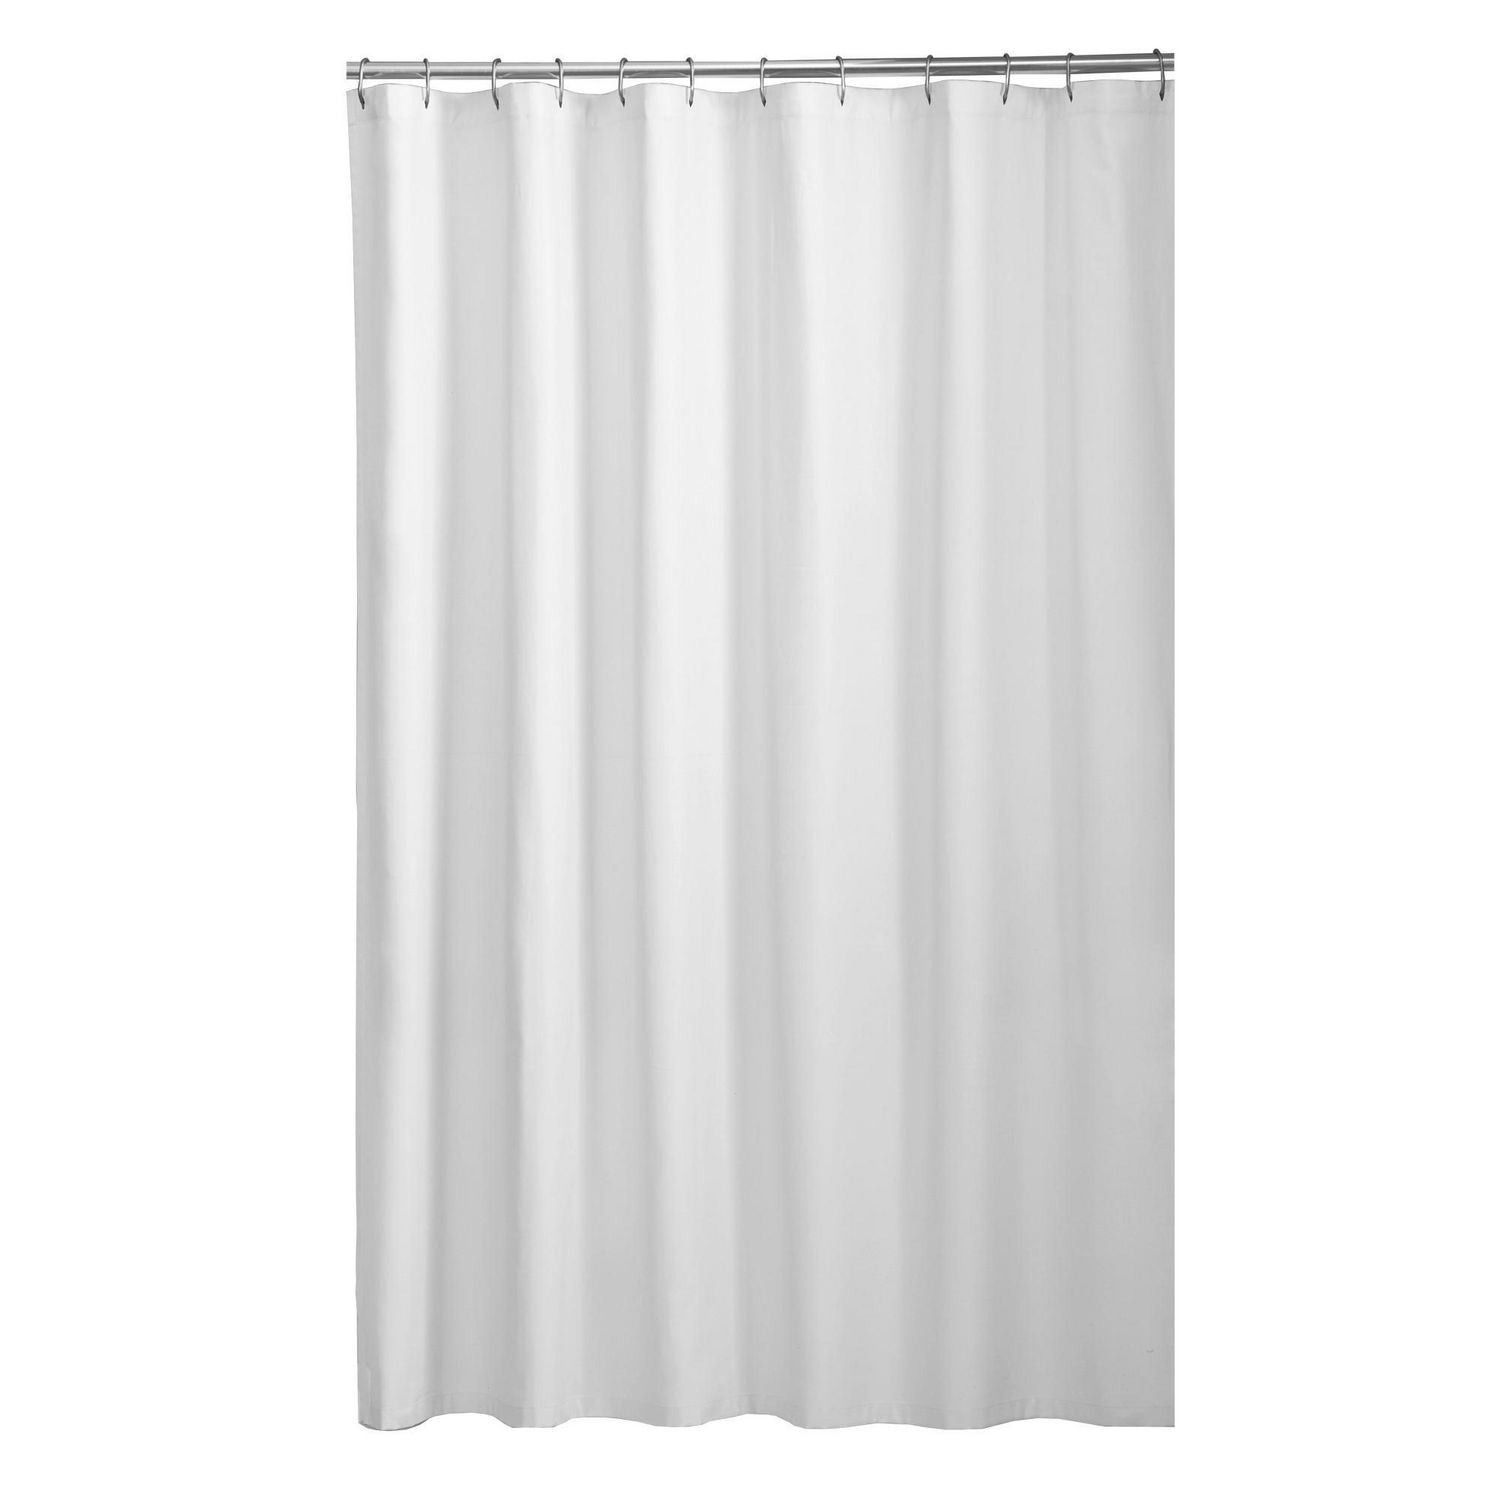 Black and white monogrammed shower curtain - Black And White Monogram Shower Curtain Cheap Mainstays Oversized Fabric Shower Liner